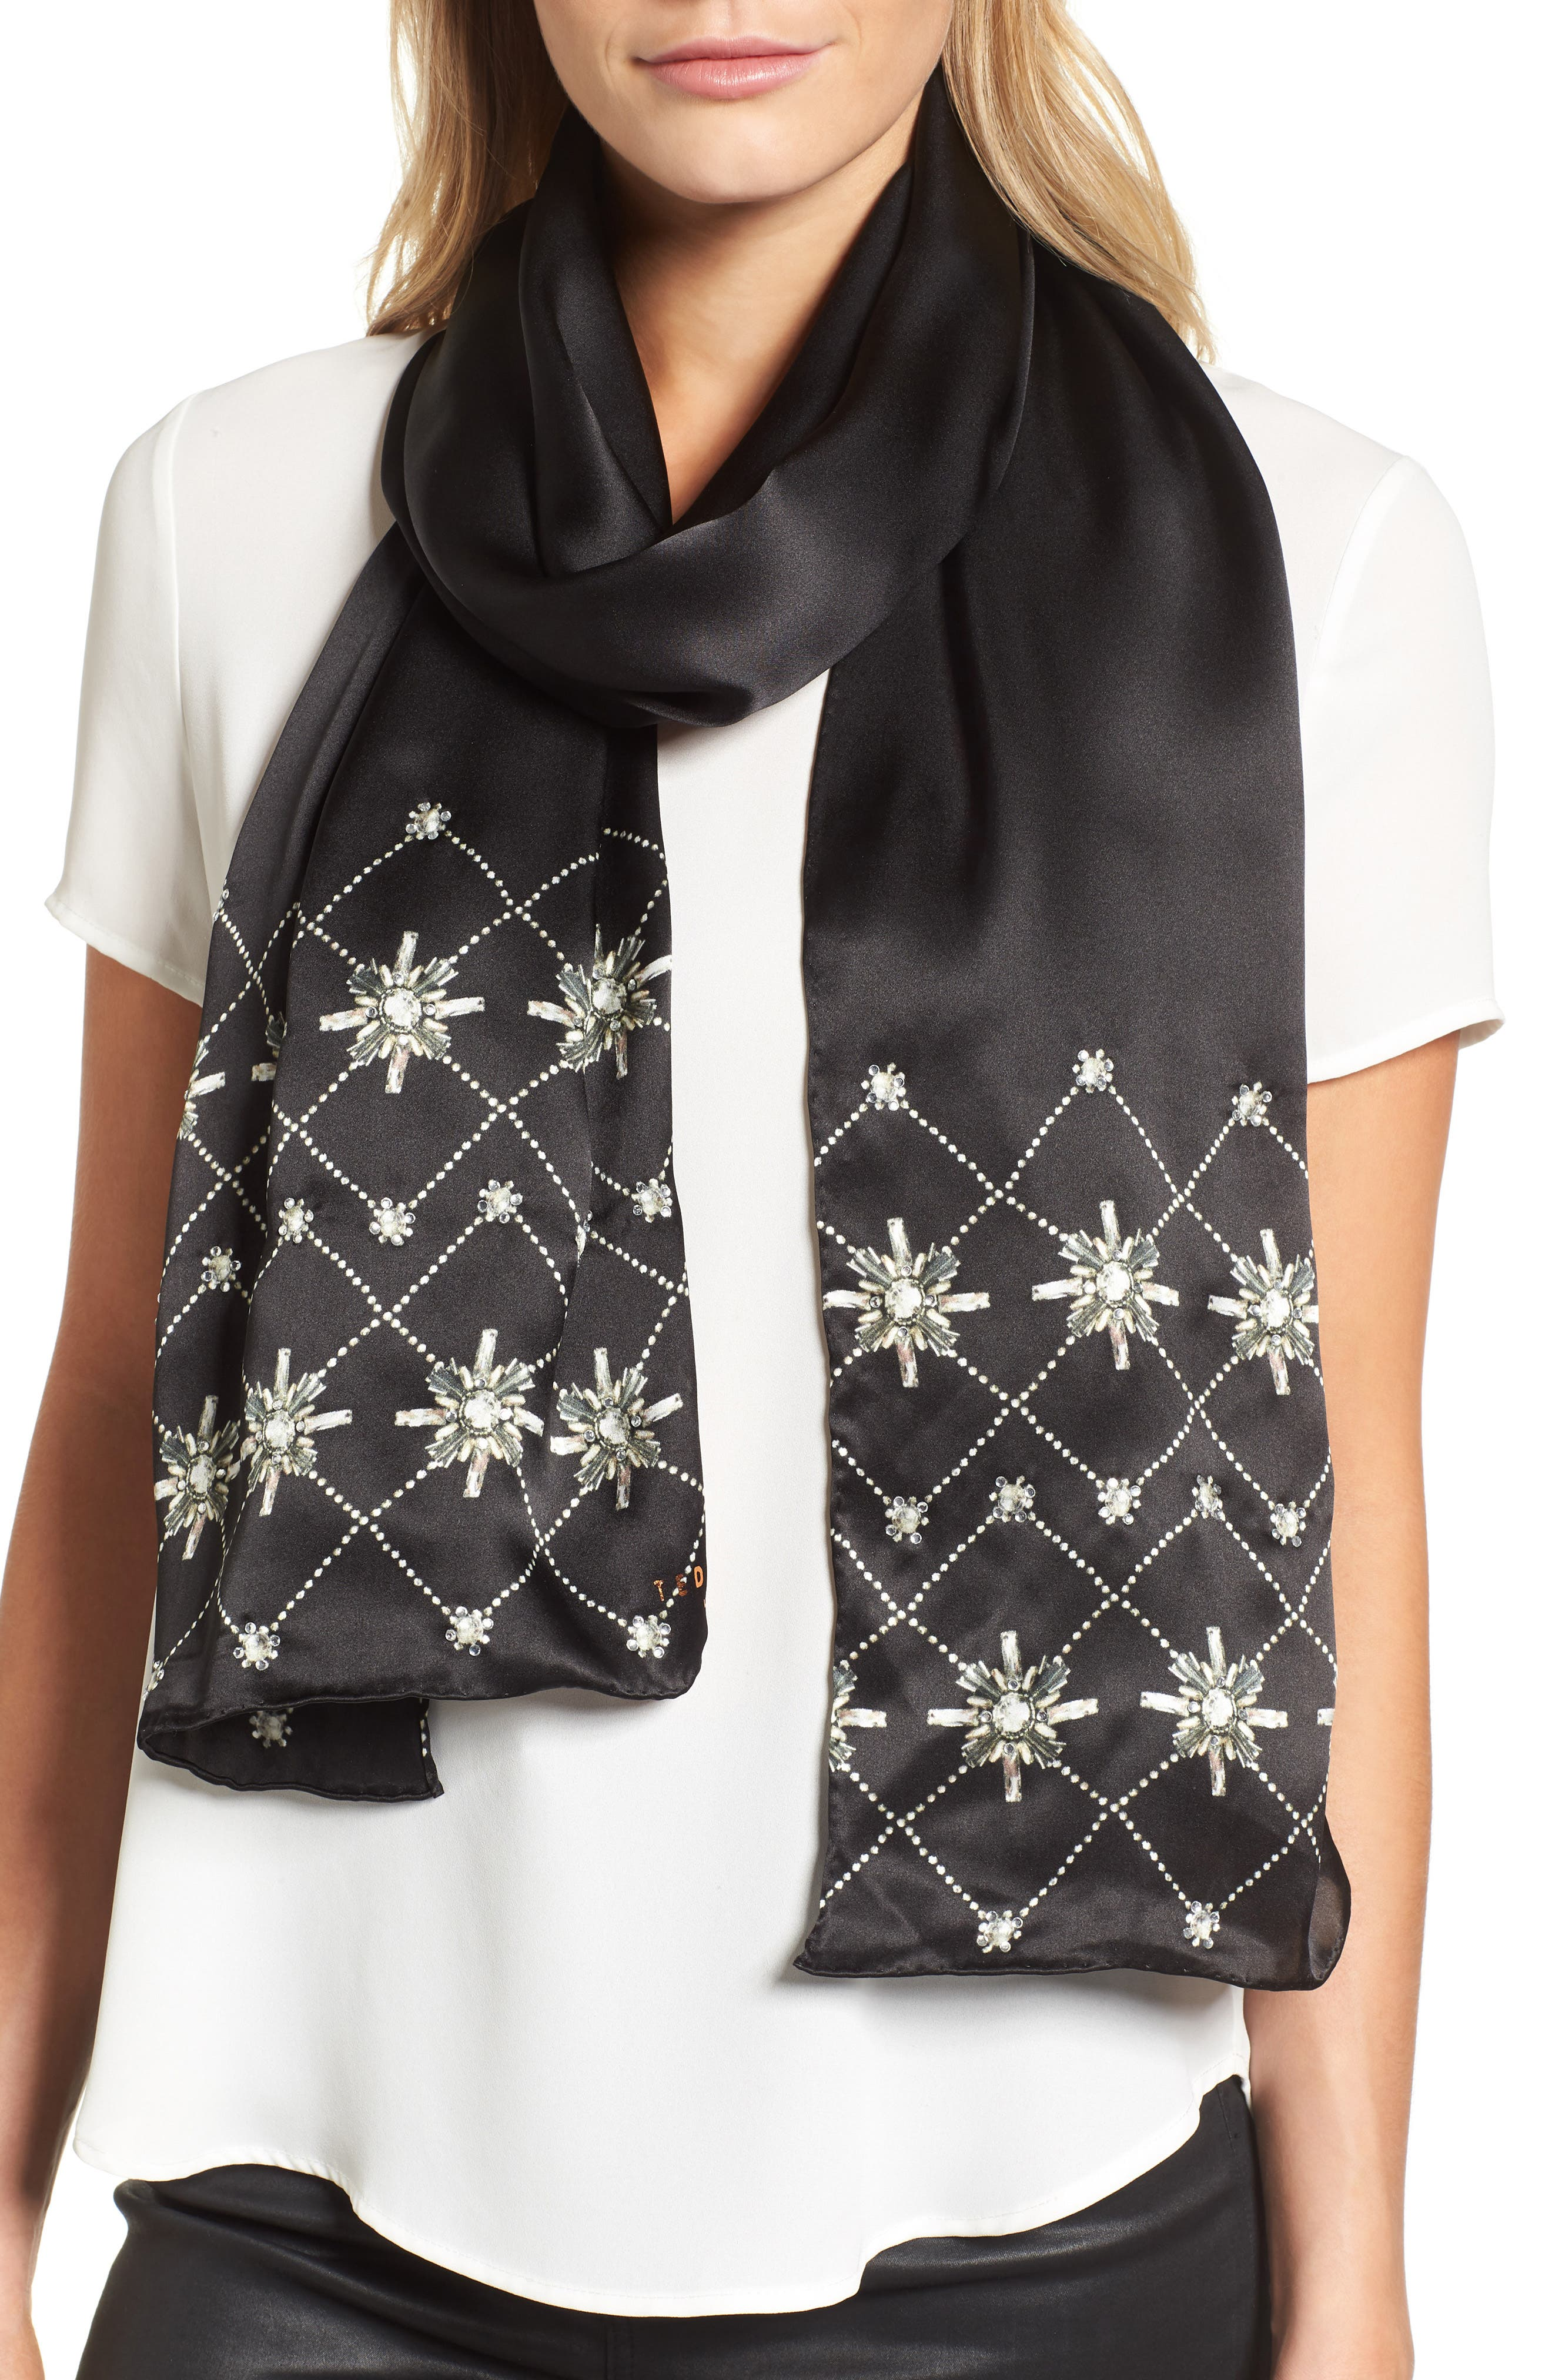 Hot Fix Embellished Skinny Silk Scarf,                             Main thumbnail 1, color,                             00-Black